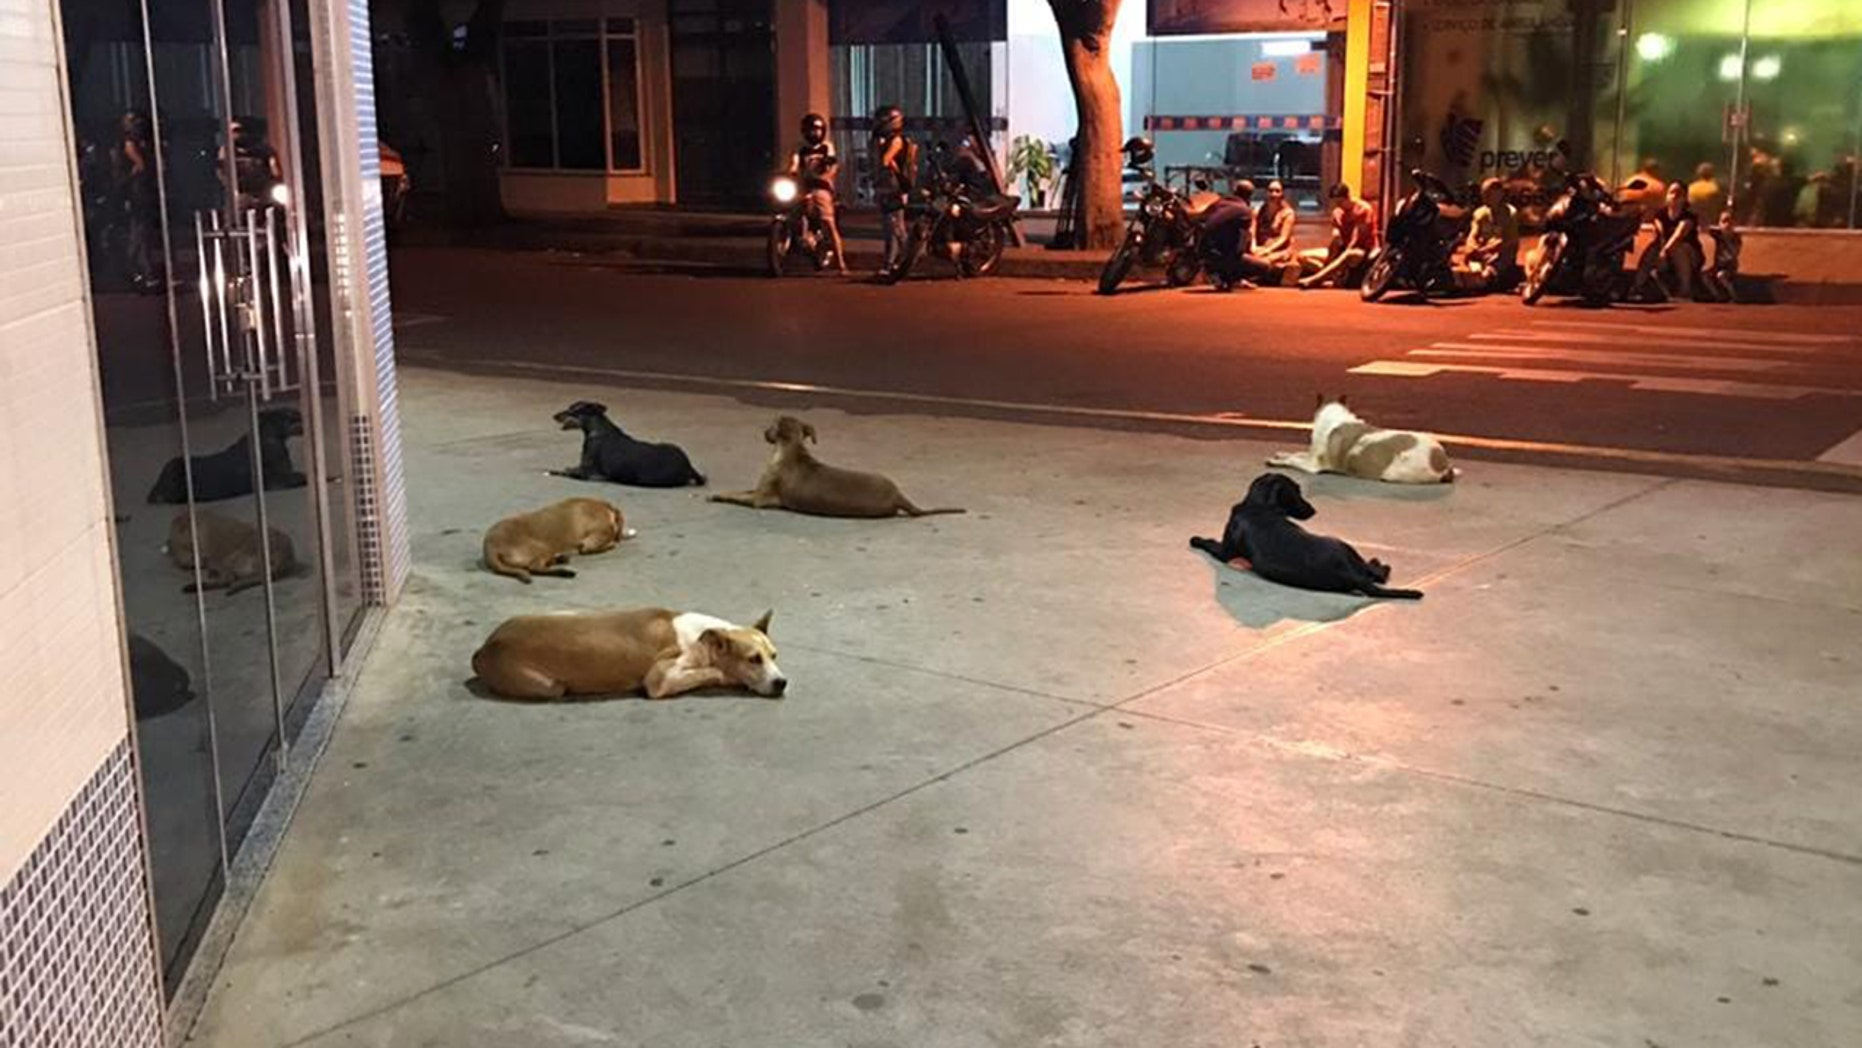 The six loyal pups of a homeless man in Brazil waited outside a hospital for more than 24 hours after he suffered a stroke.